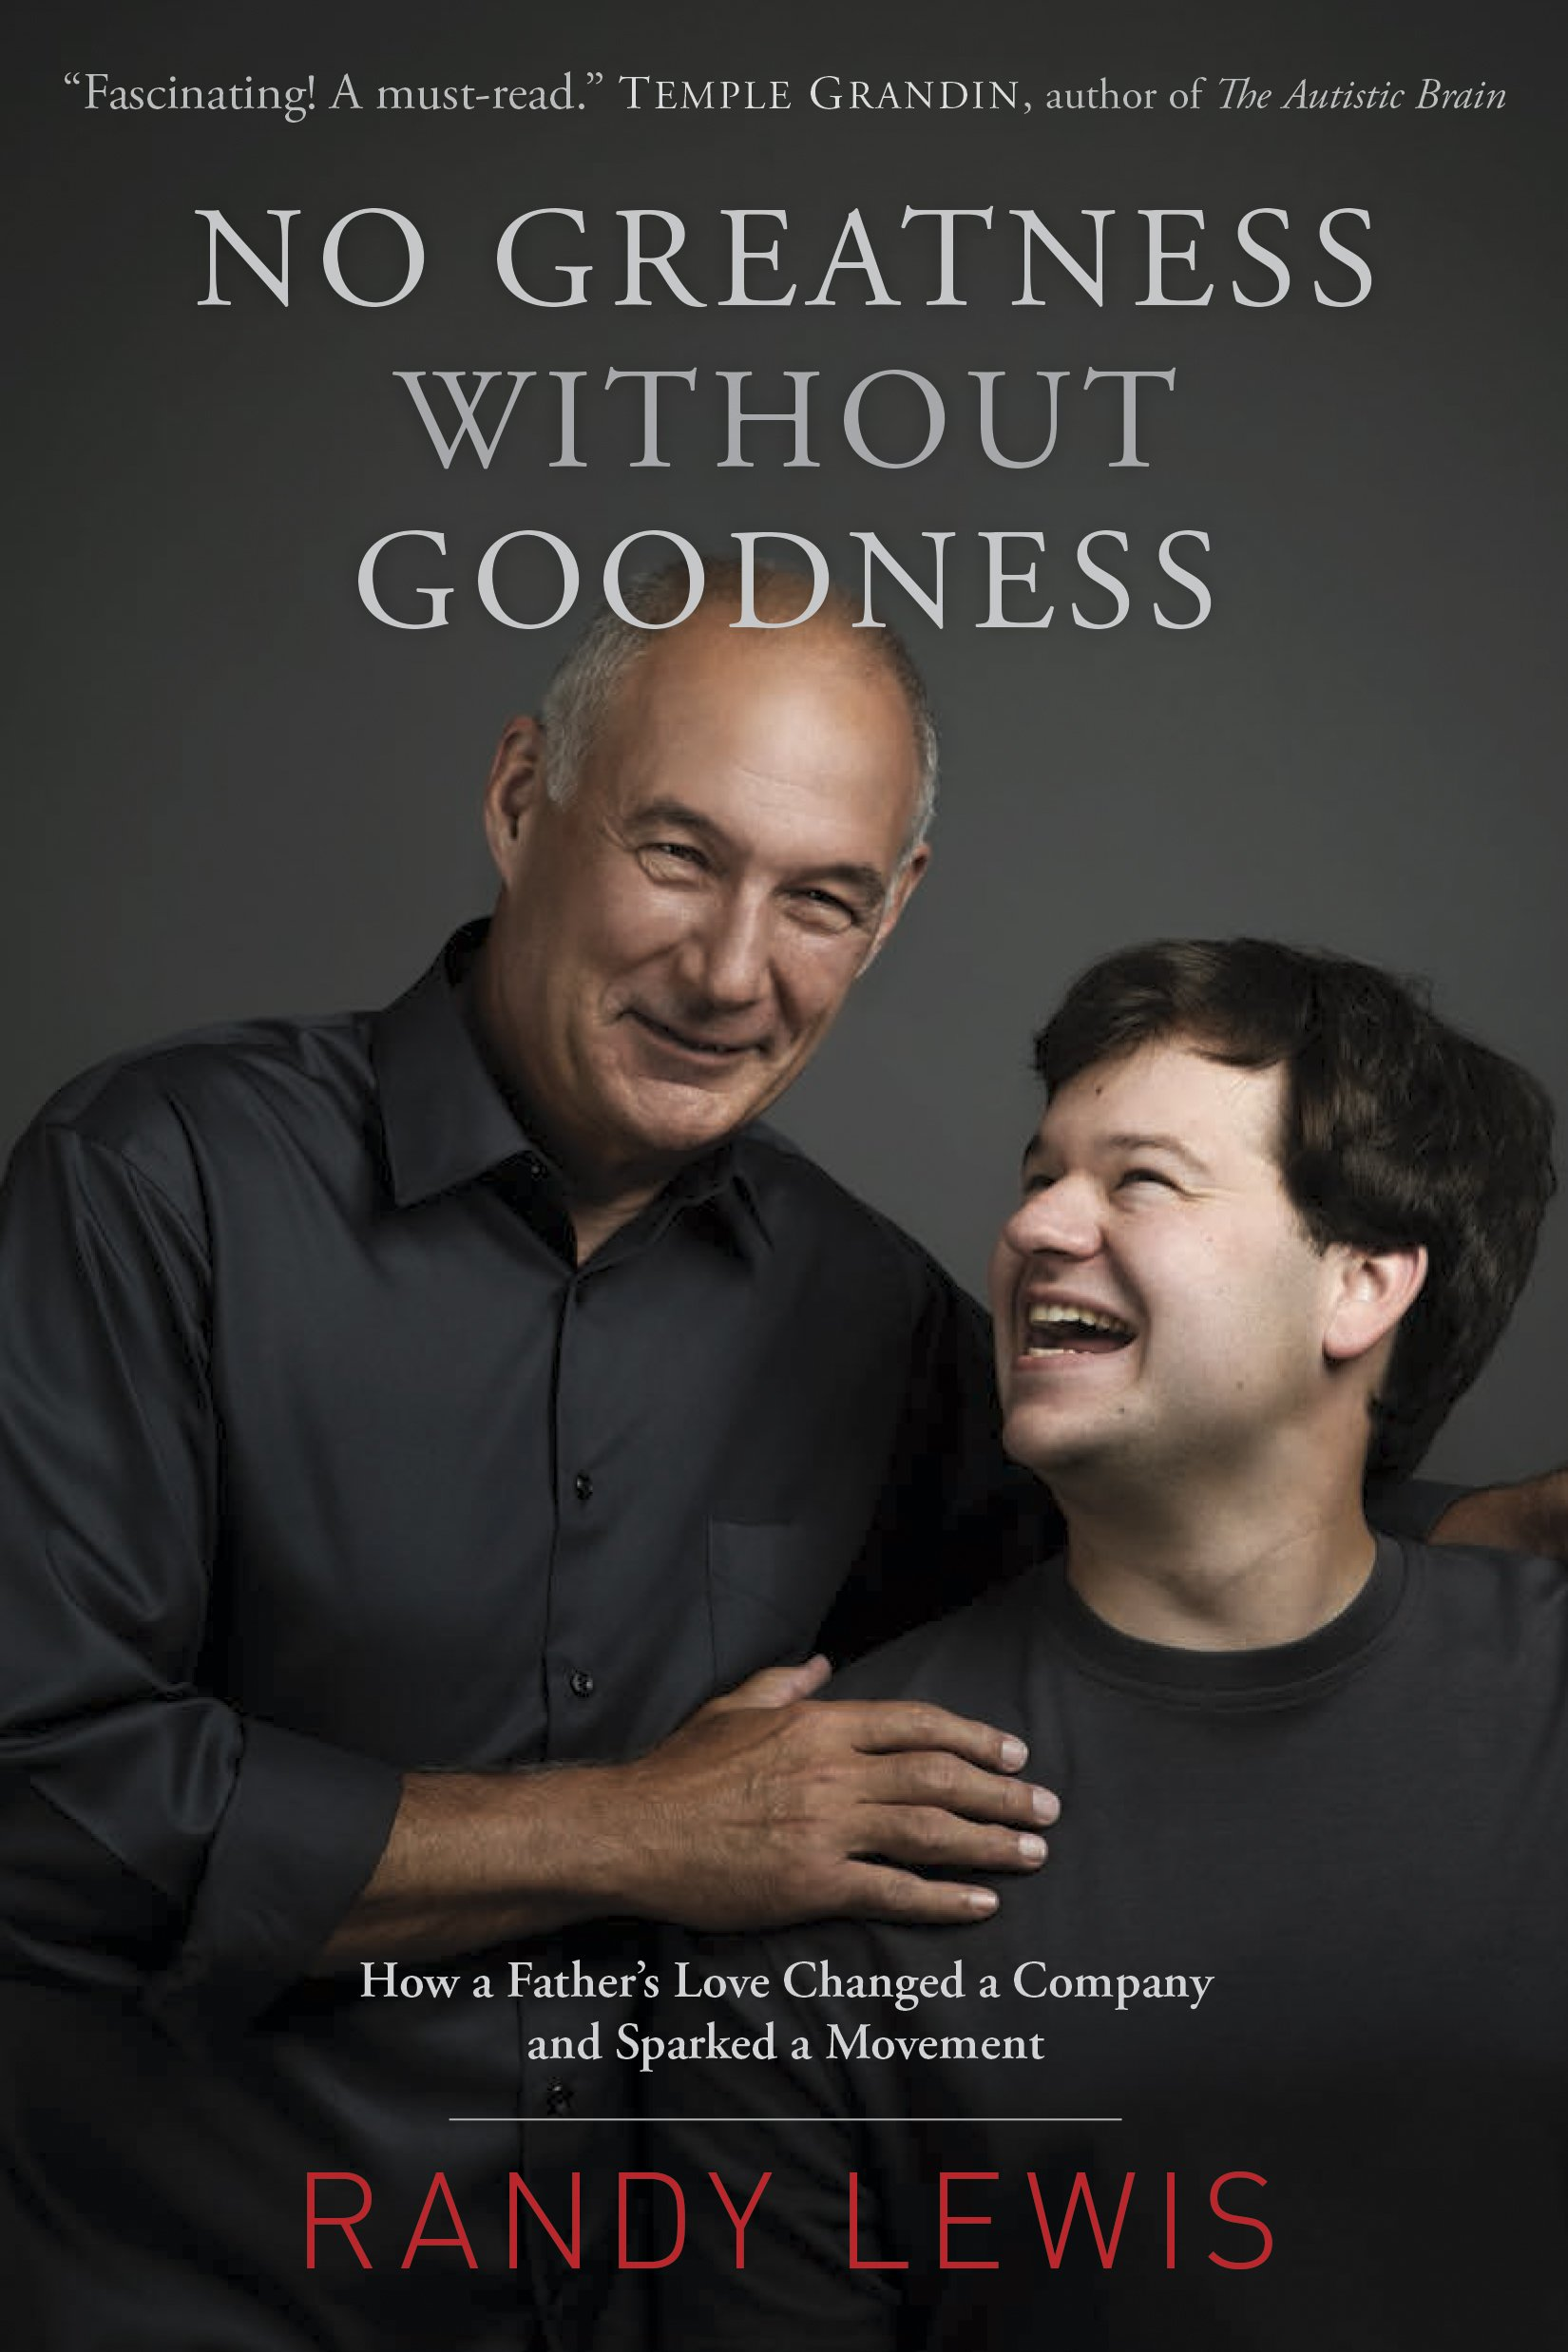 Book cover of Randy Lewis' No Greatness with Goodness.